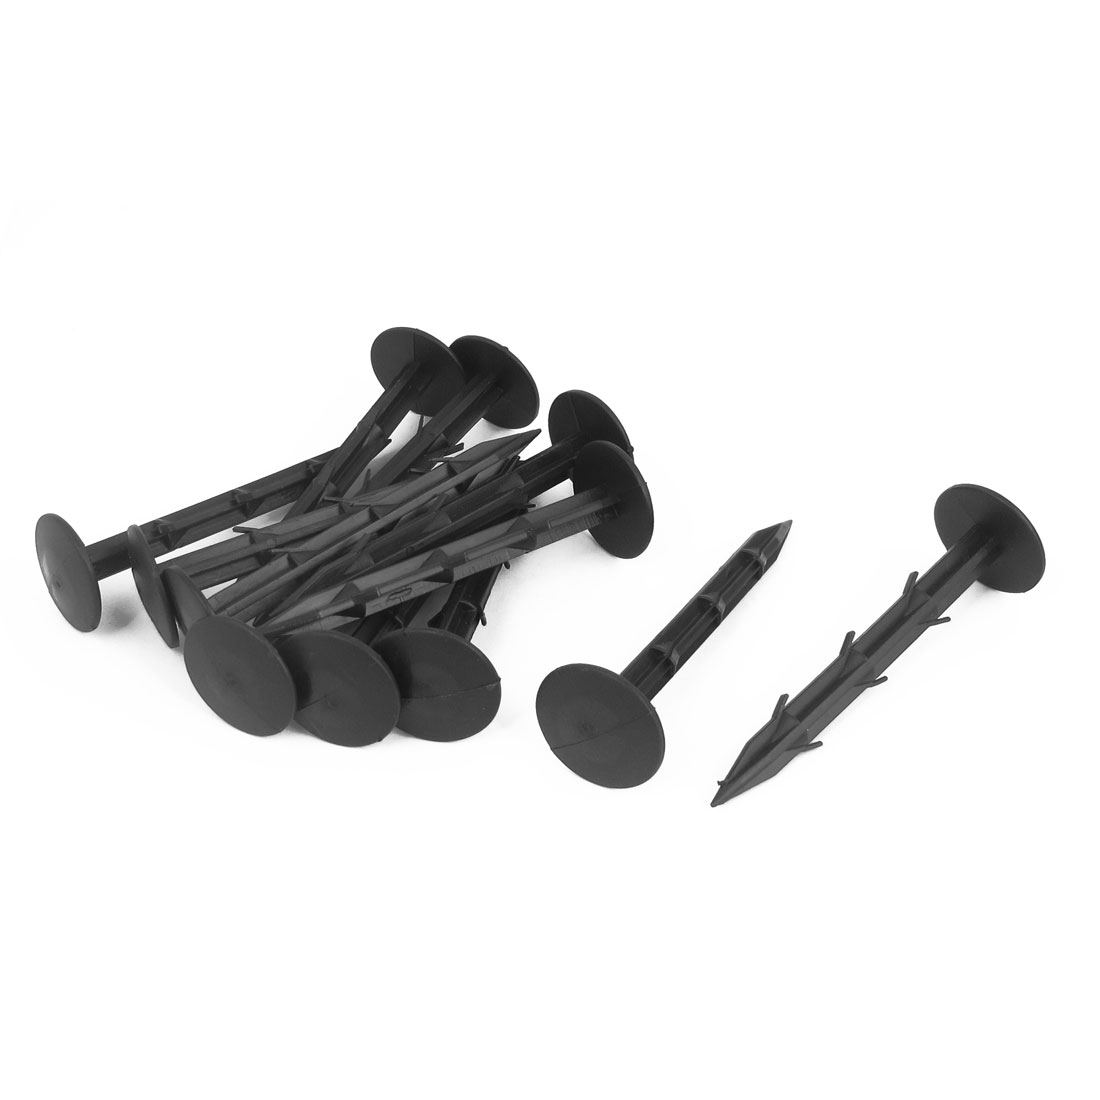 """12pcs 4.3"""" Long Barded Weed Control Mulch Membrane Tarpaulin Tent Fixing Anchor Securing Pegs Black"""